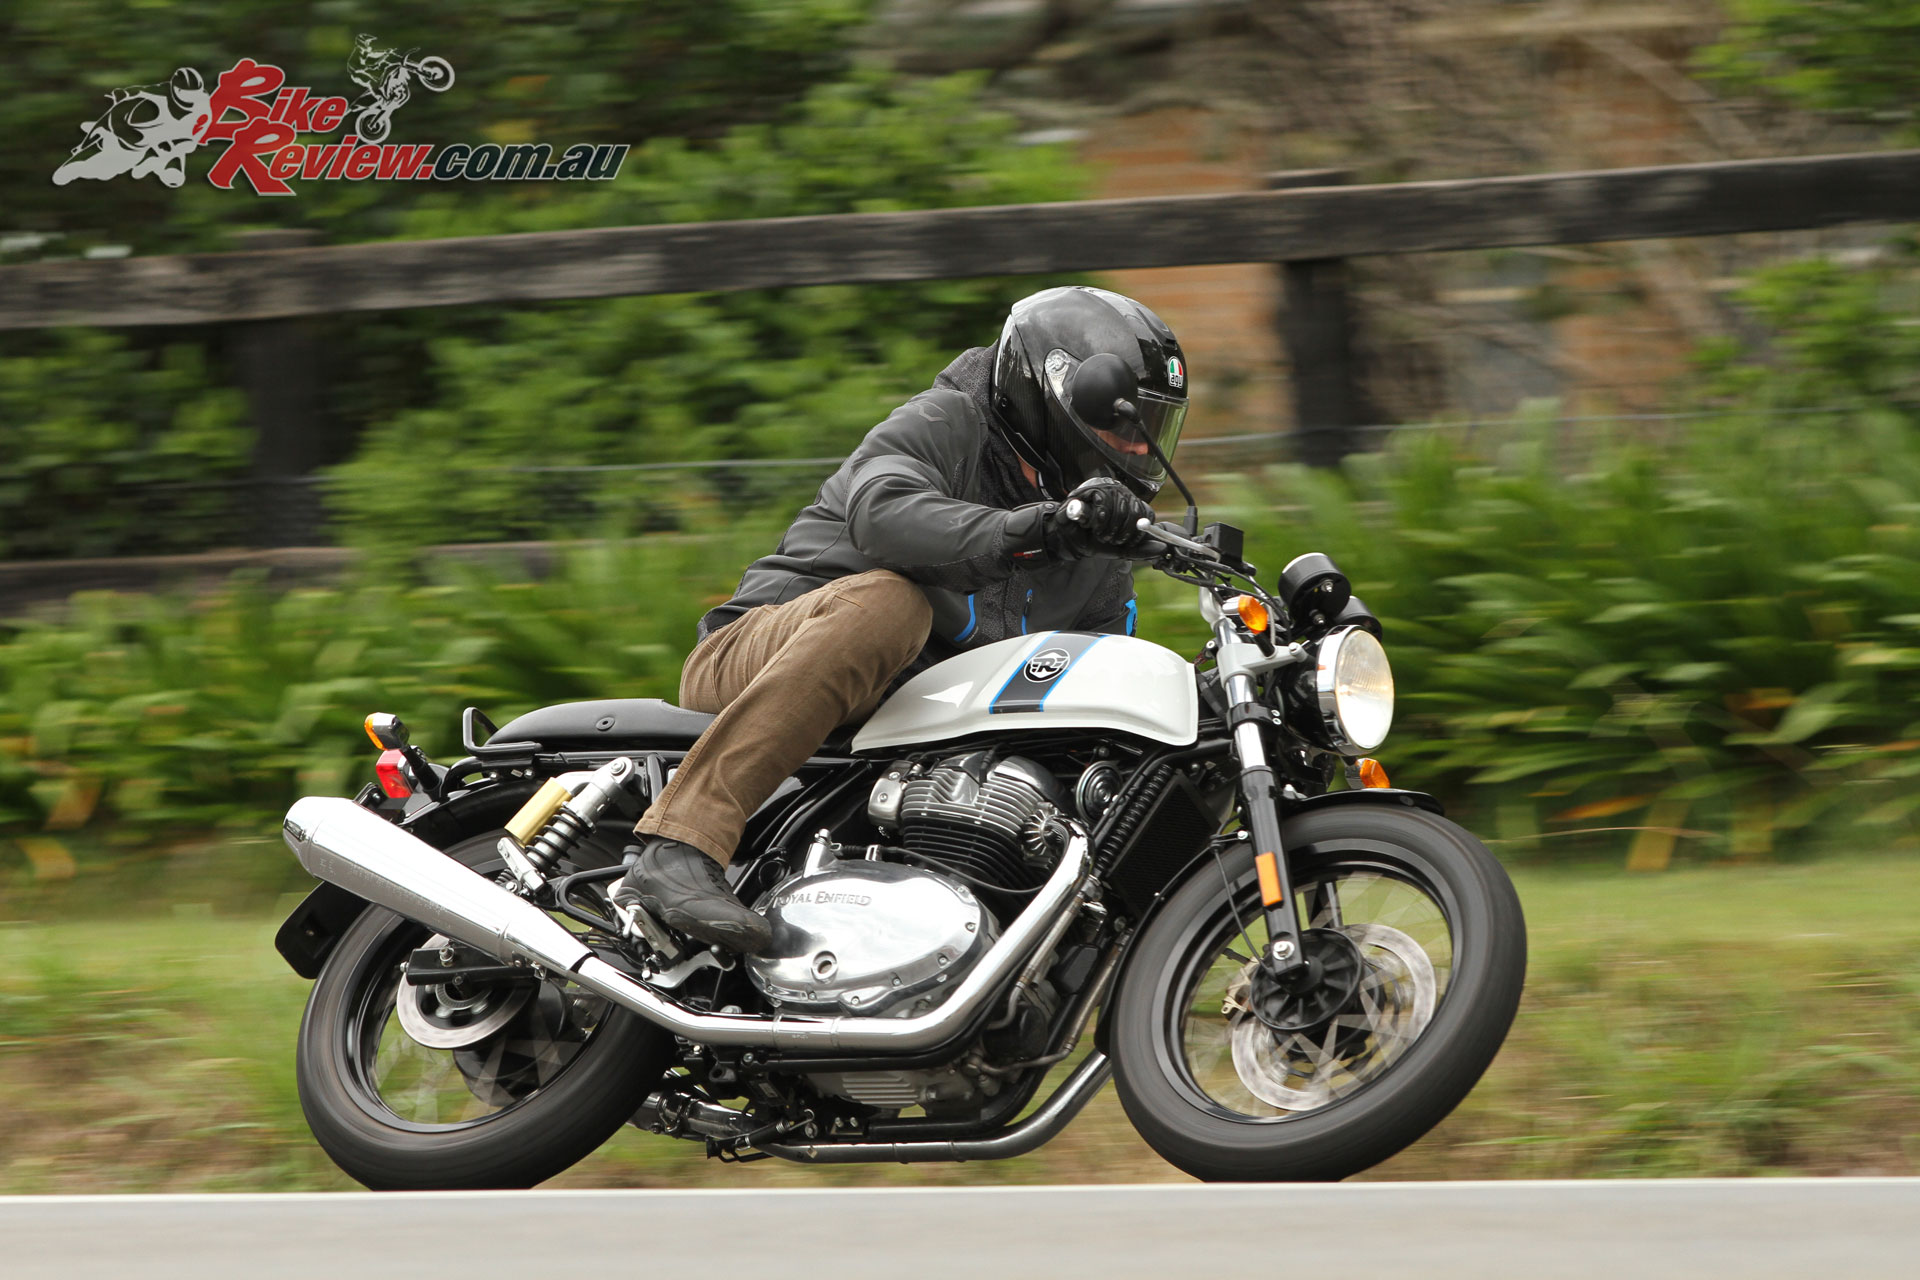 I did note on the really rough road surfaces the Continental GT 650 shocks were less controlled